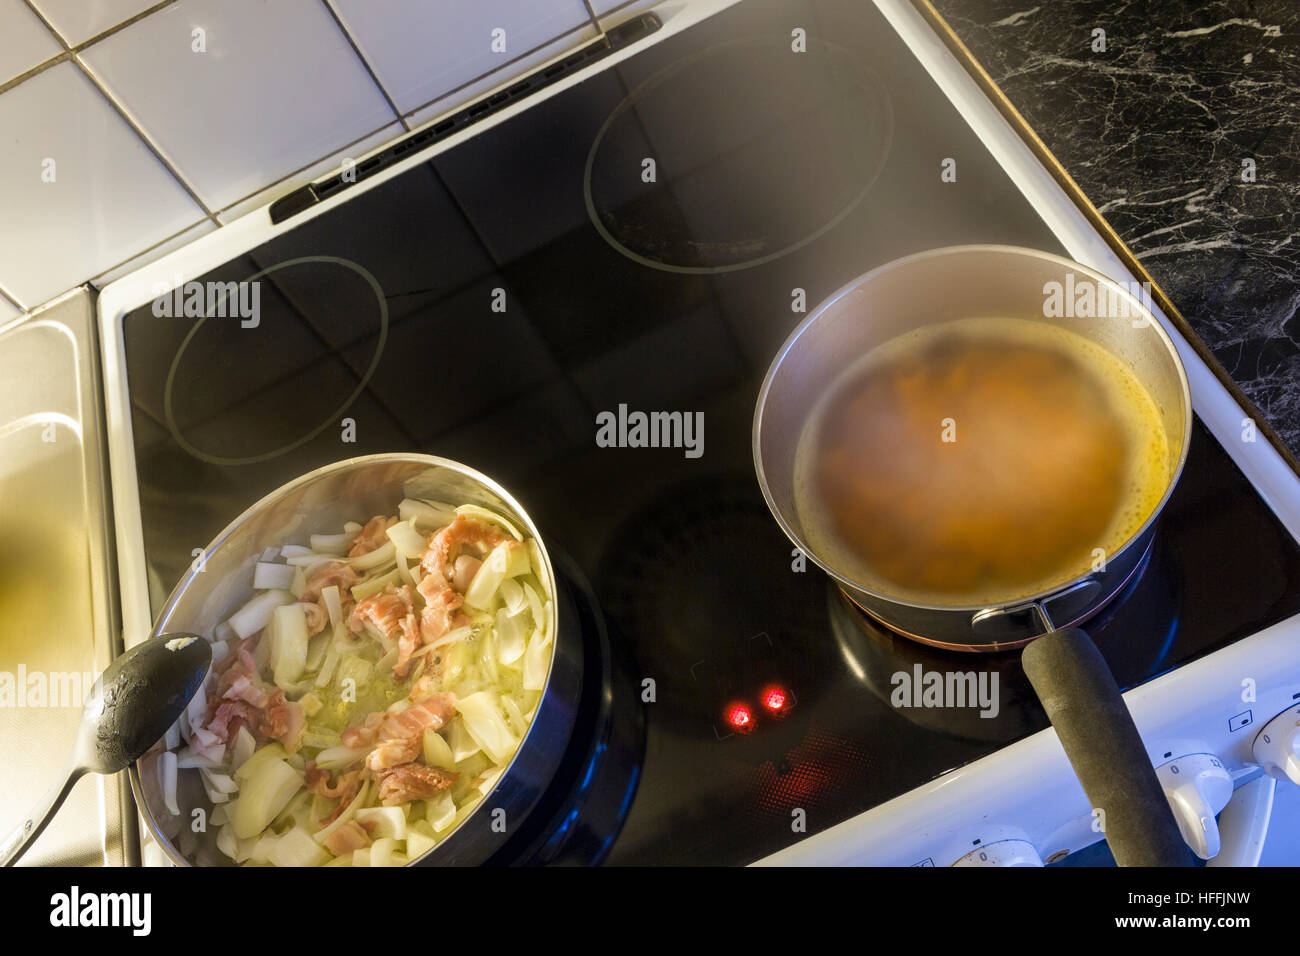 Dinner meal being prepared and cooked on kitchen stove  Model Release: No.  Property Release: No. - Stock Image